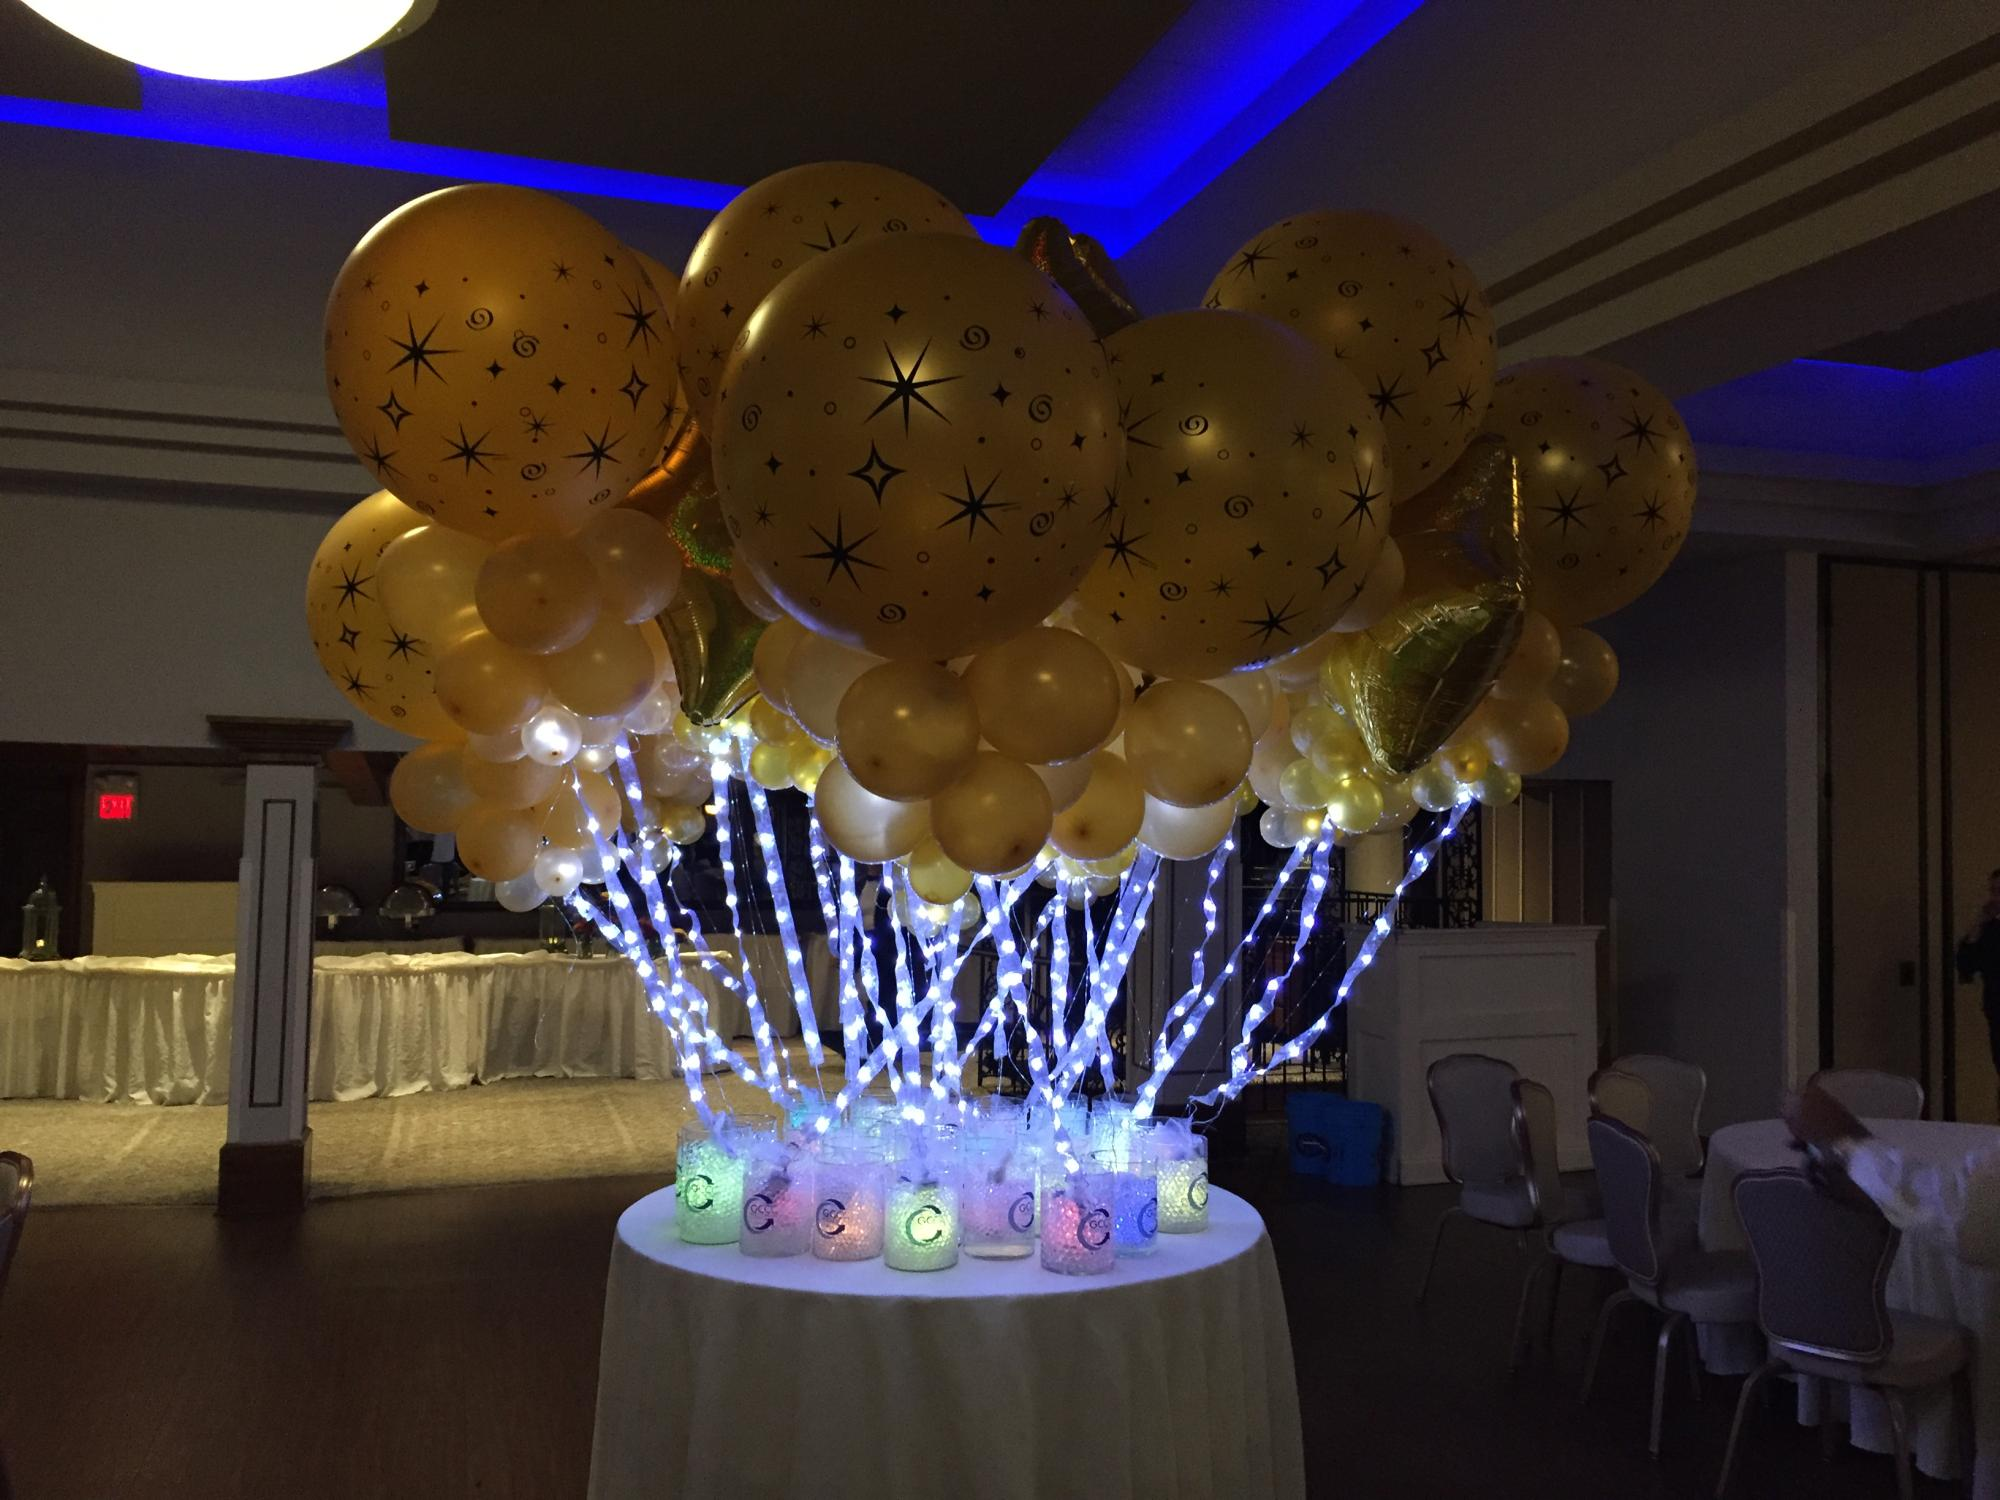 Balloon centerpieces with lights